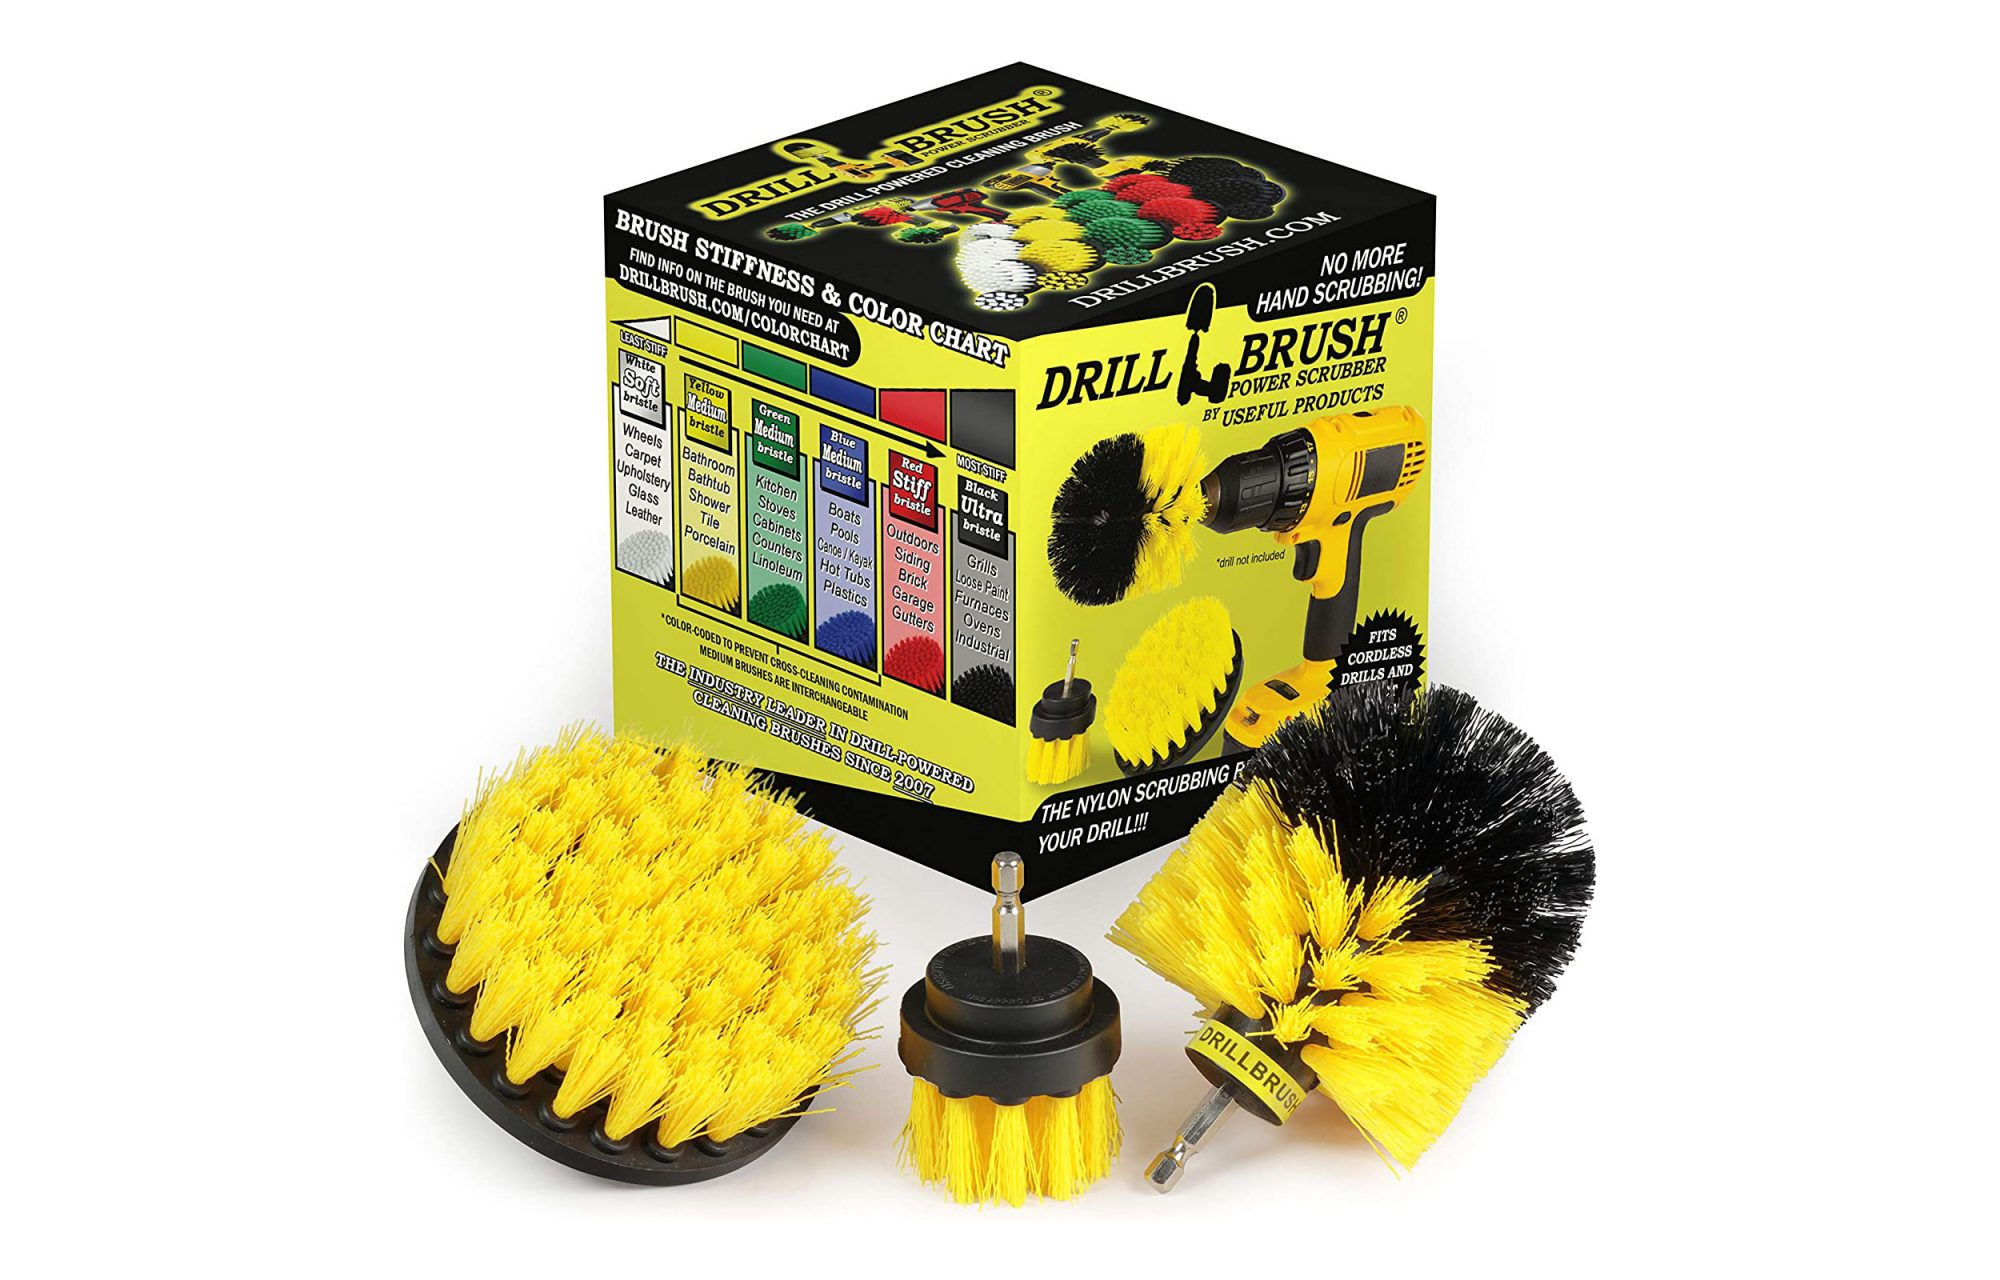 the power scrubber with more than 23